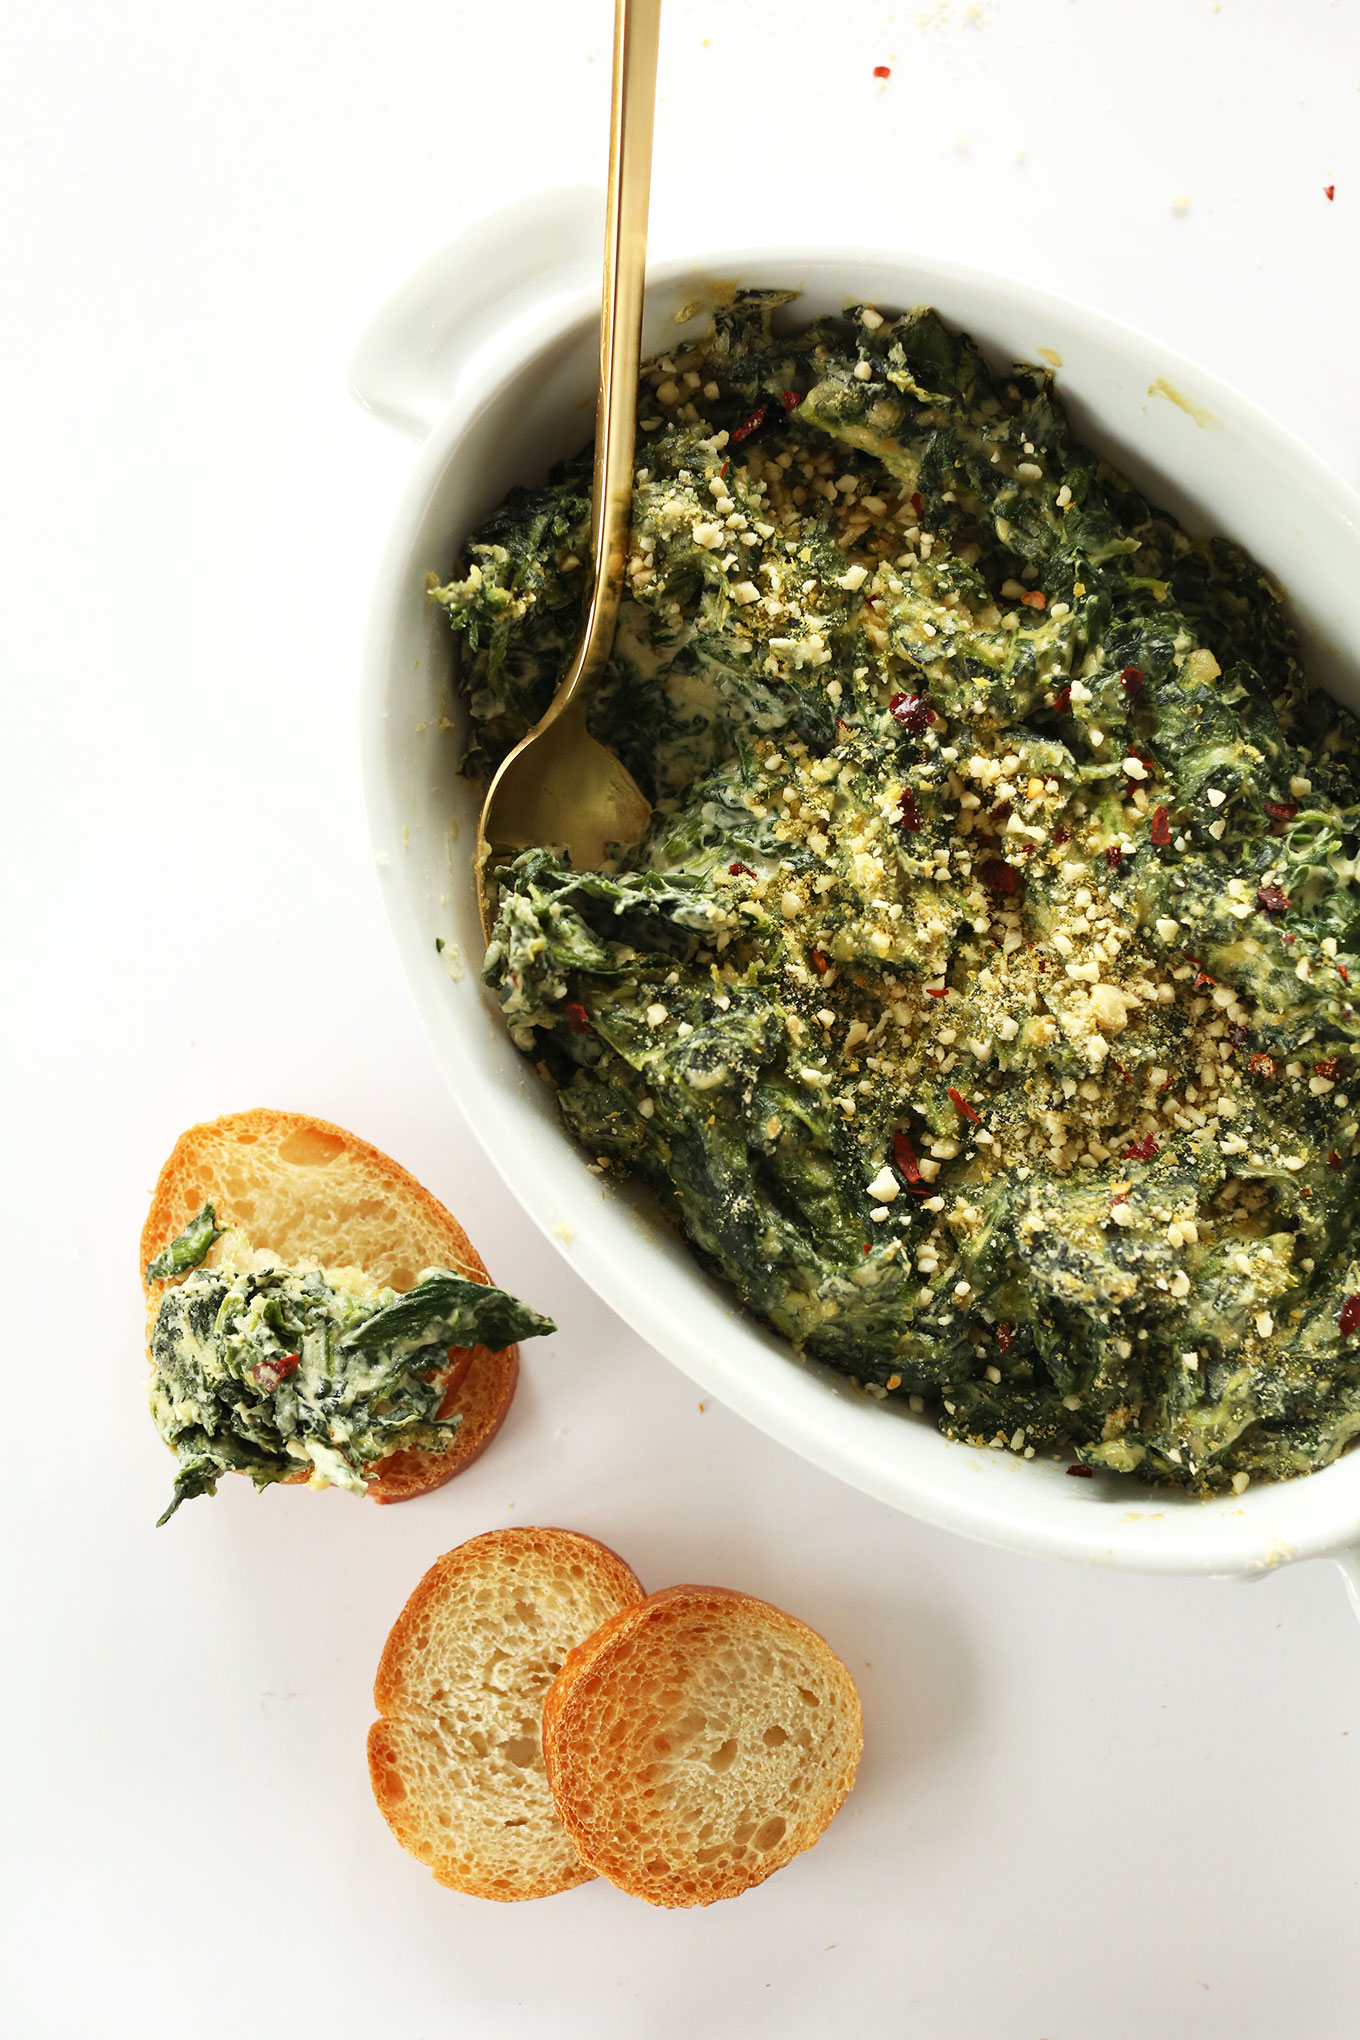 Dairy-free Creamy Kale and Spinach Dip for a healthy appetizer